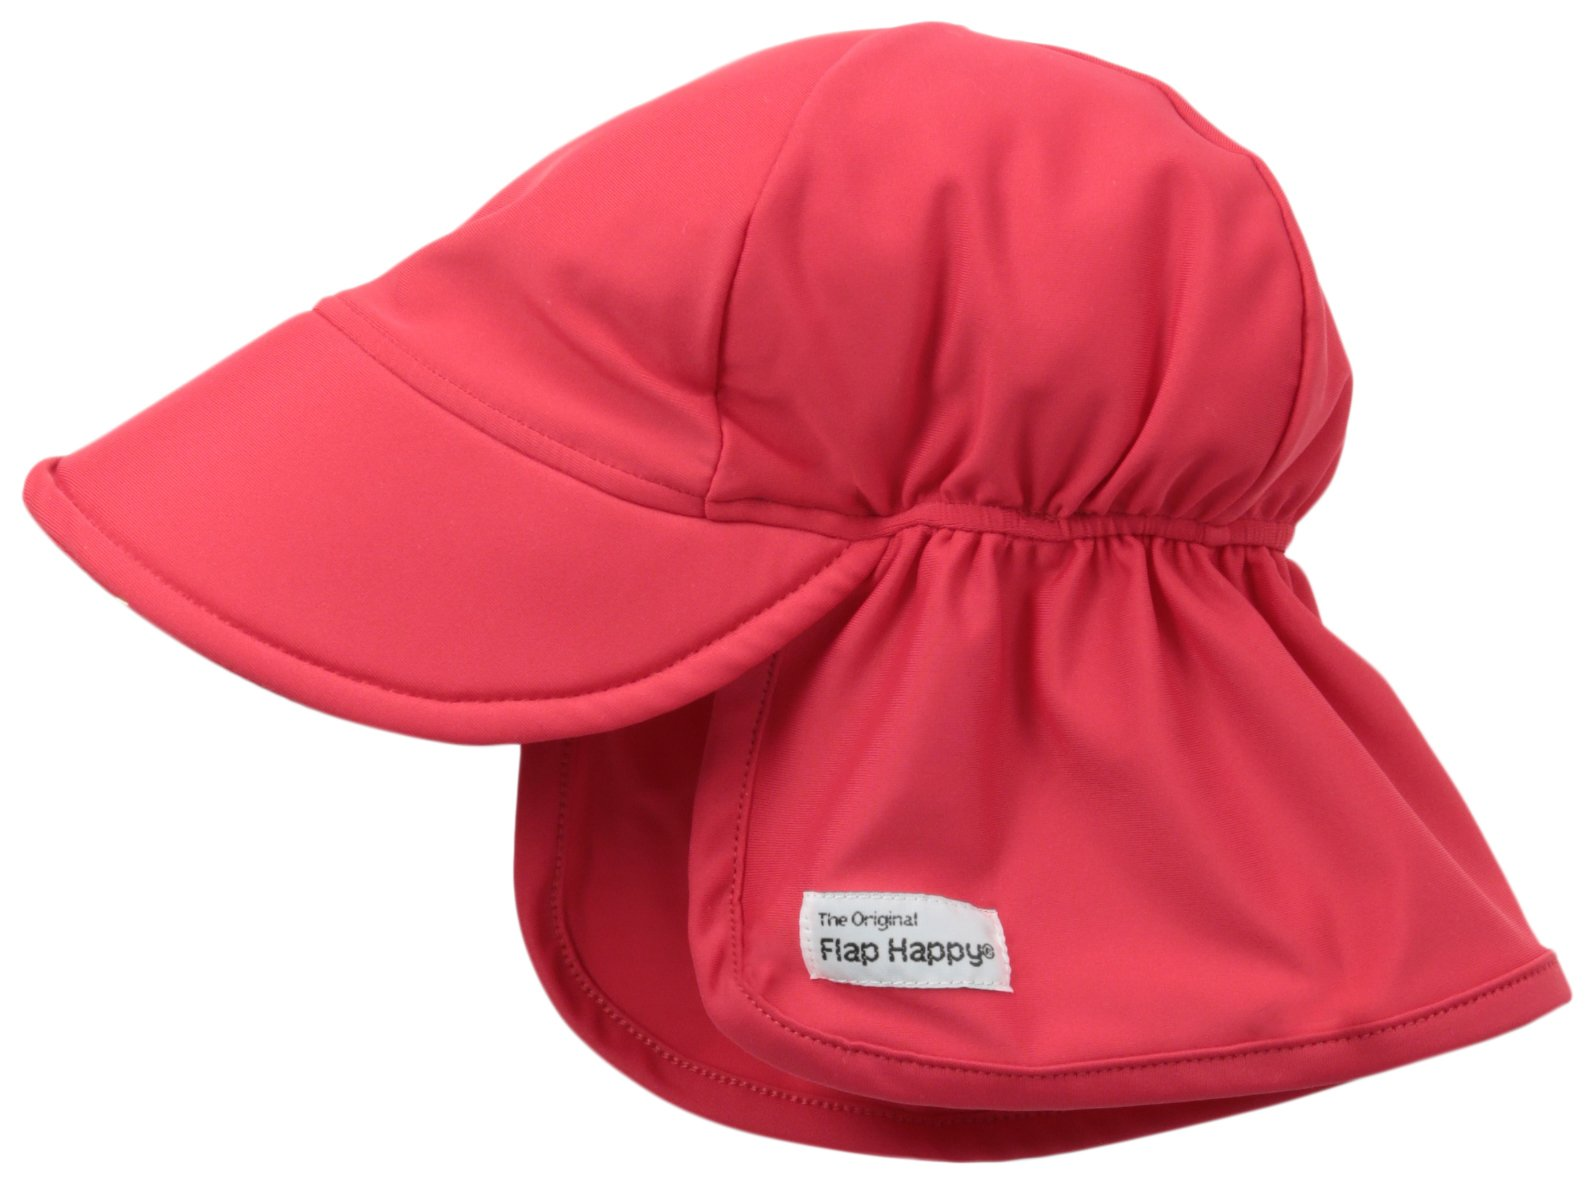 Flap Happy Baby and Childrens Swim Flap Hat UPF 50+, Highest Certified UV Sun Protection, Azo-free dye, Floats on Water, Red Large